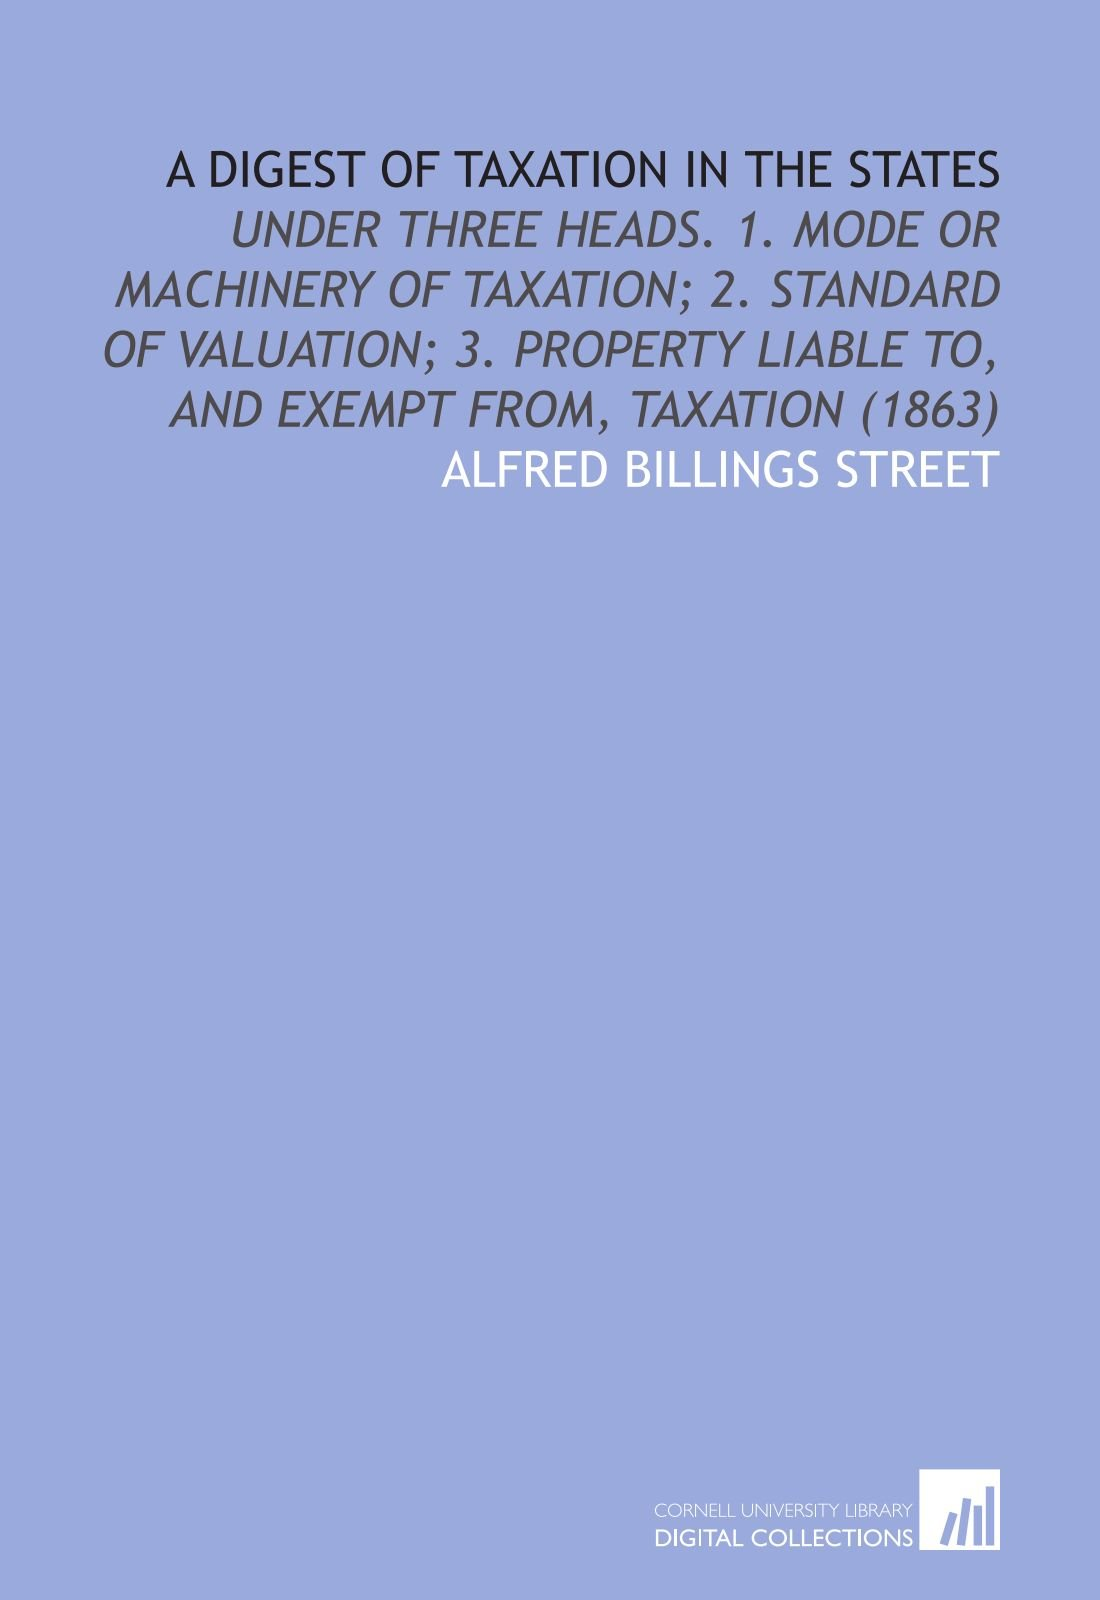 Read Online A Digest of Taxation in the States: Under Three Heads. 1. Mode or Machinery of Taxation; 2. Standard of Valuation; 3. Property Liable to, and Exempt From, Taxation (1863) pdf epub